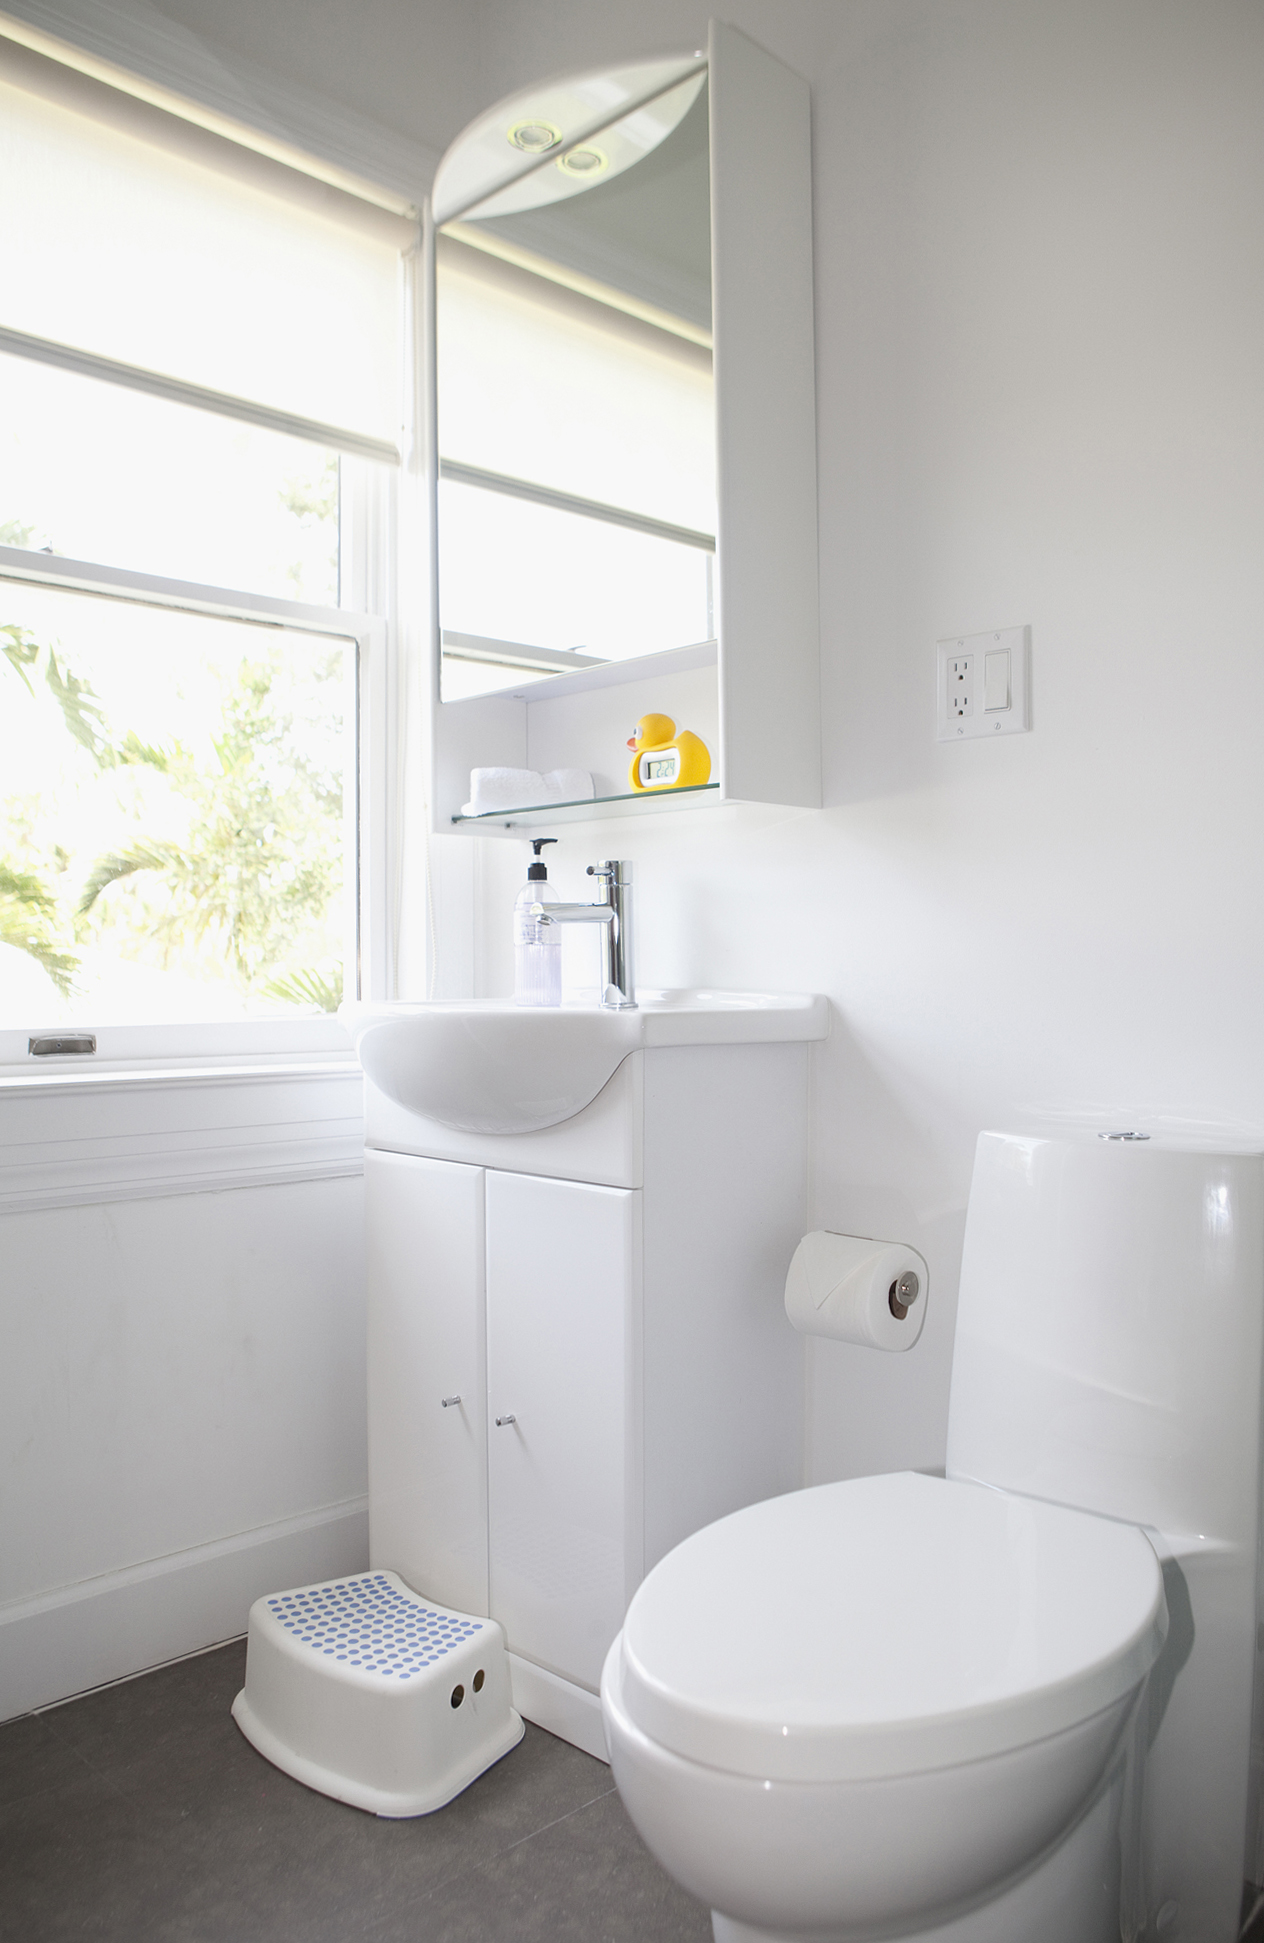 White bathroom sink and medicine cabinet for small bathroom storage